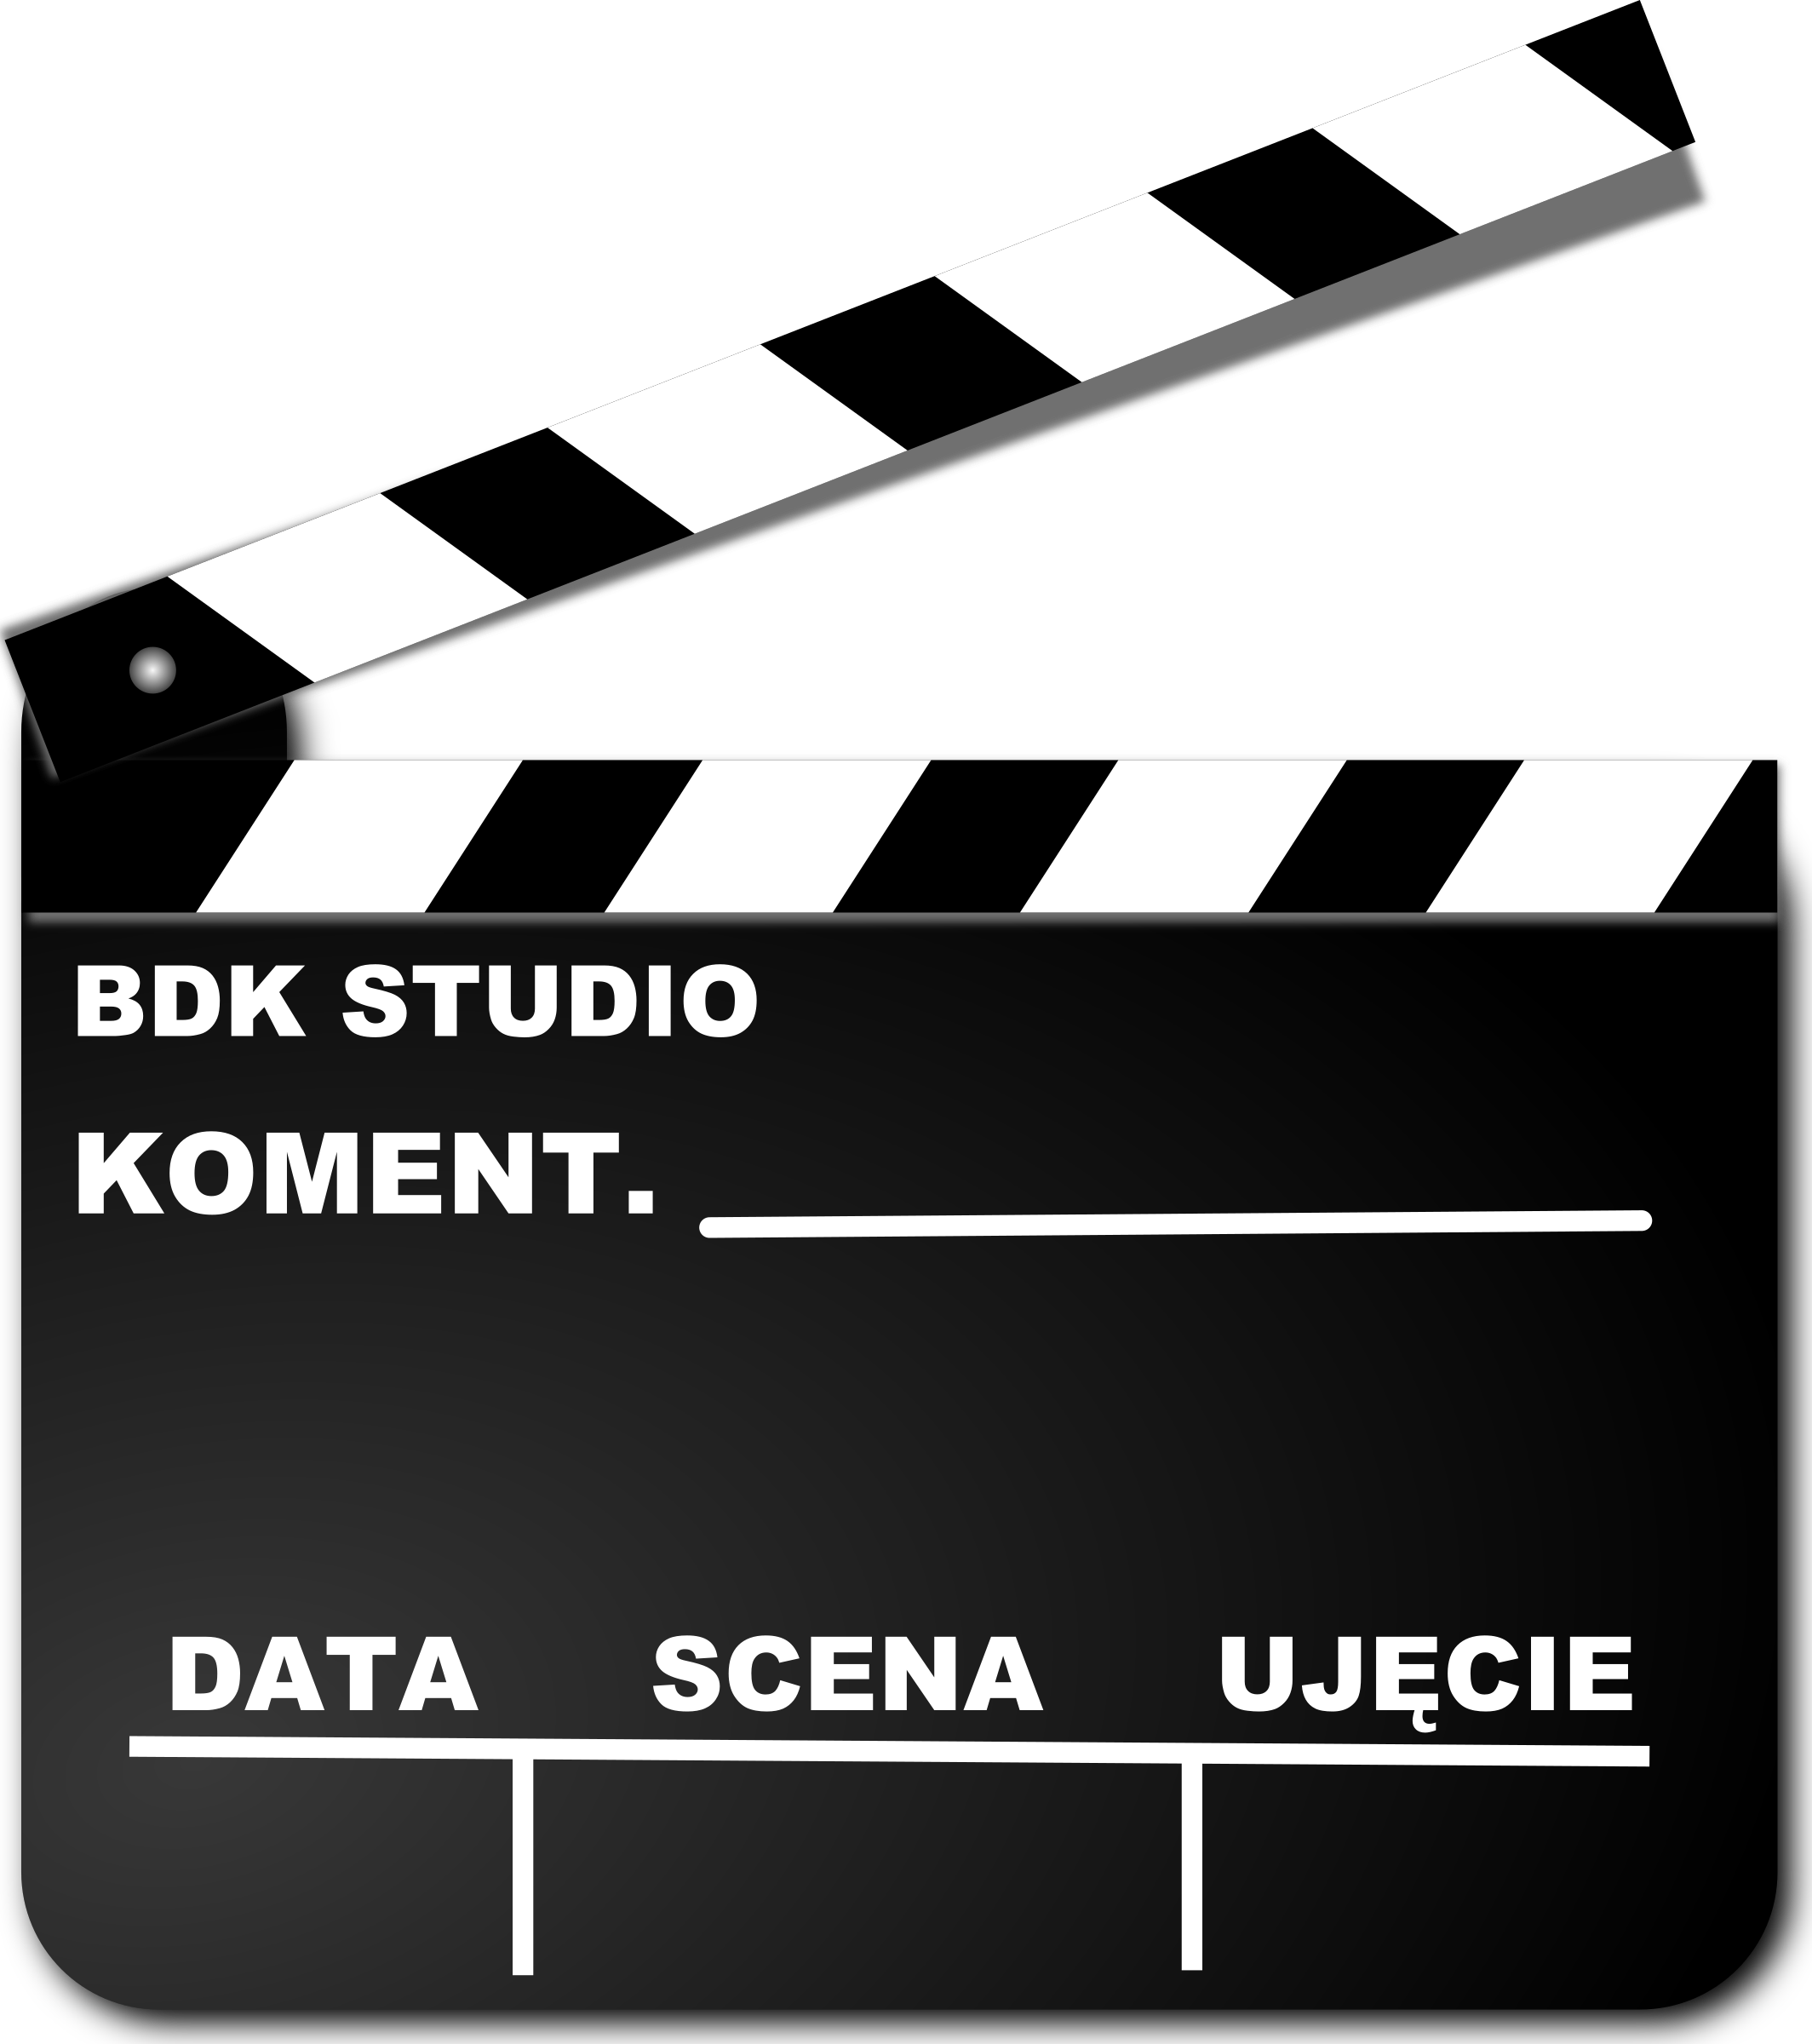 Klaps (Movie Clapper Board) by Anomaly